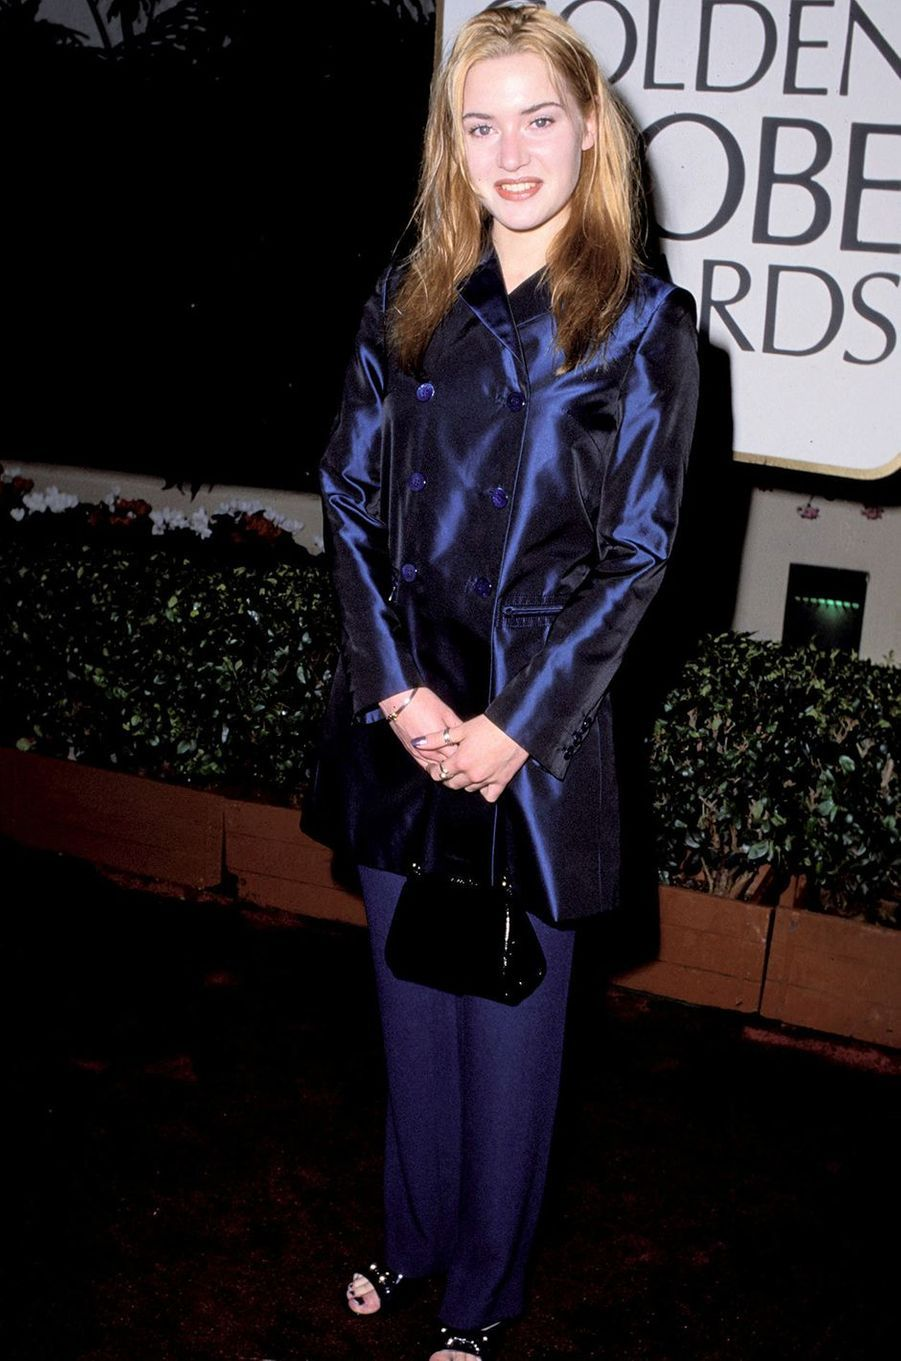 Kate Winslet aux Golden Globes à Los Angeles en janvier 1996